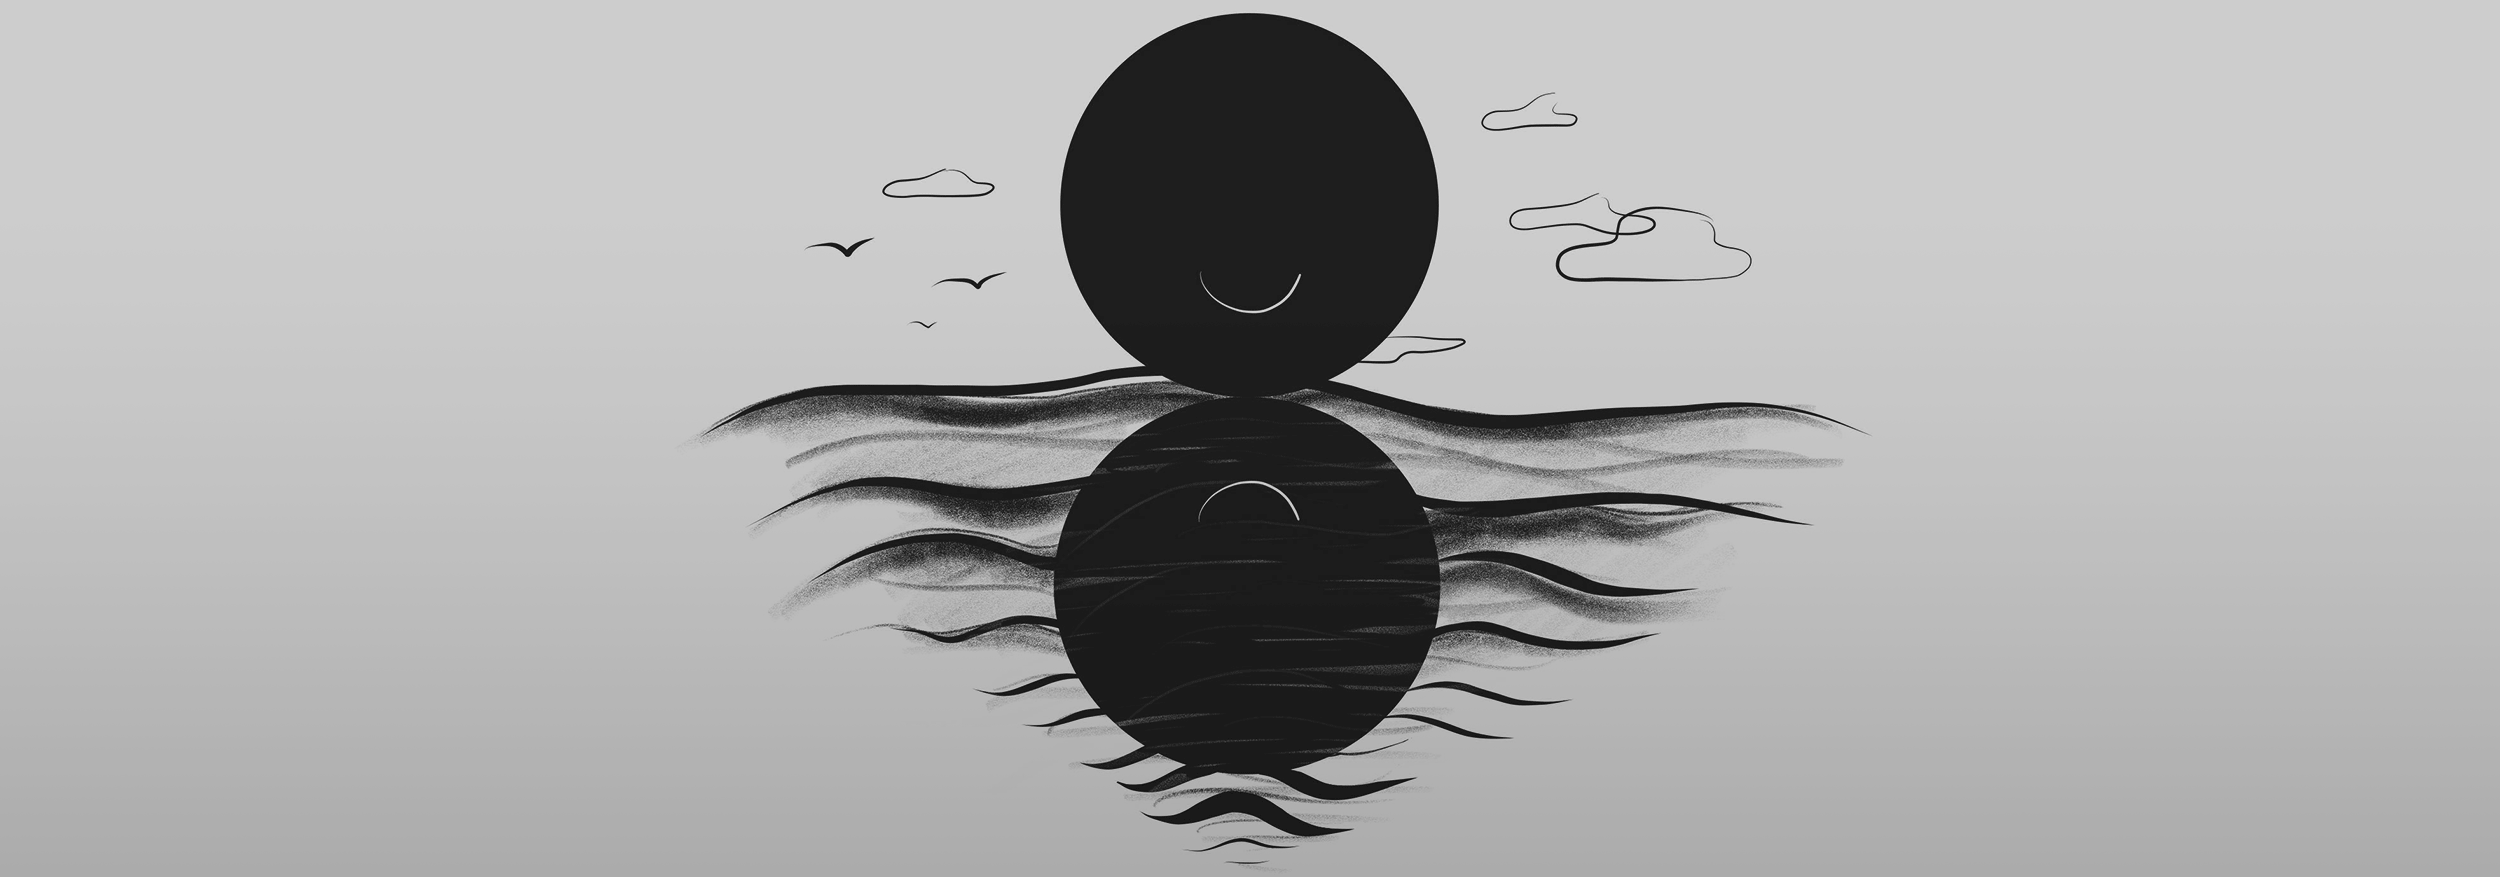 Illustration of two circles, one above water with an upturned smile, the other a reflection in waves with a down-turned smile